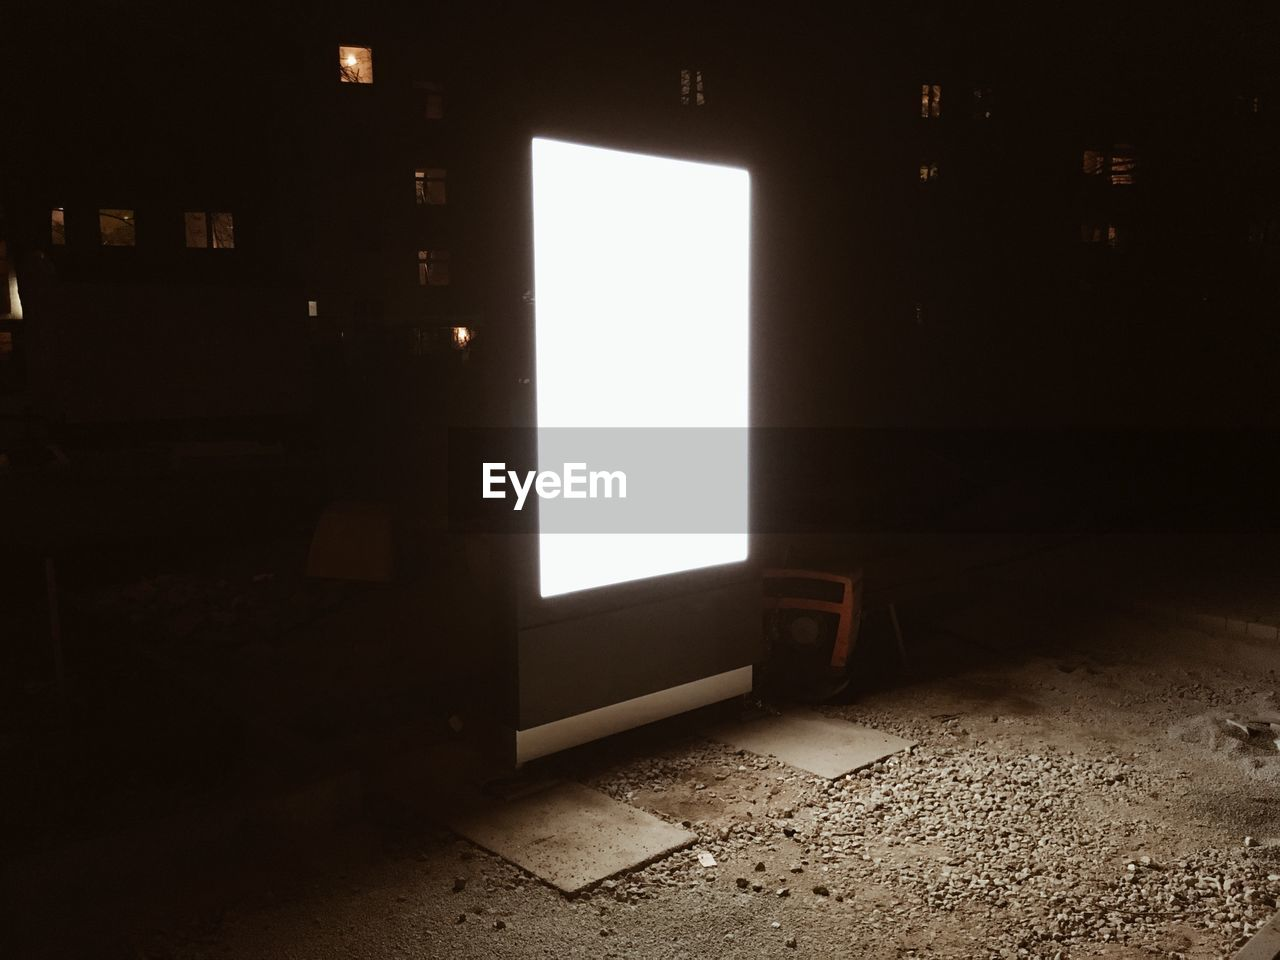 no people, architecture, indoors, window, copy space, built structure, domestic room, illuminated, dark, building, abandoned, wall - building feature, flooring, nature, night, house, light - natural phenomenon, blank